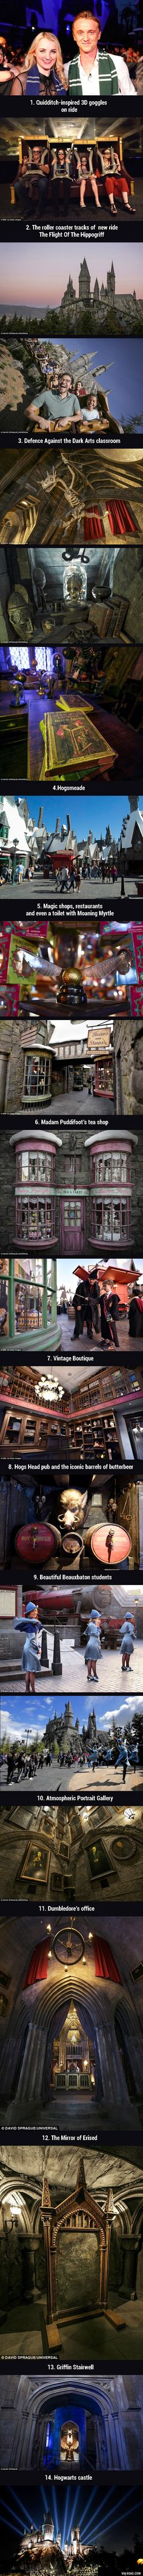 First Look At The Wizarding World of Harry Potter At Los Angeles - 9GAG YOU KNOW I WAS HERE, RIGHT?!